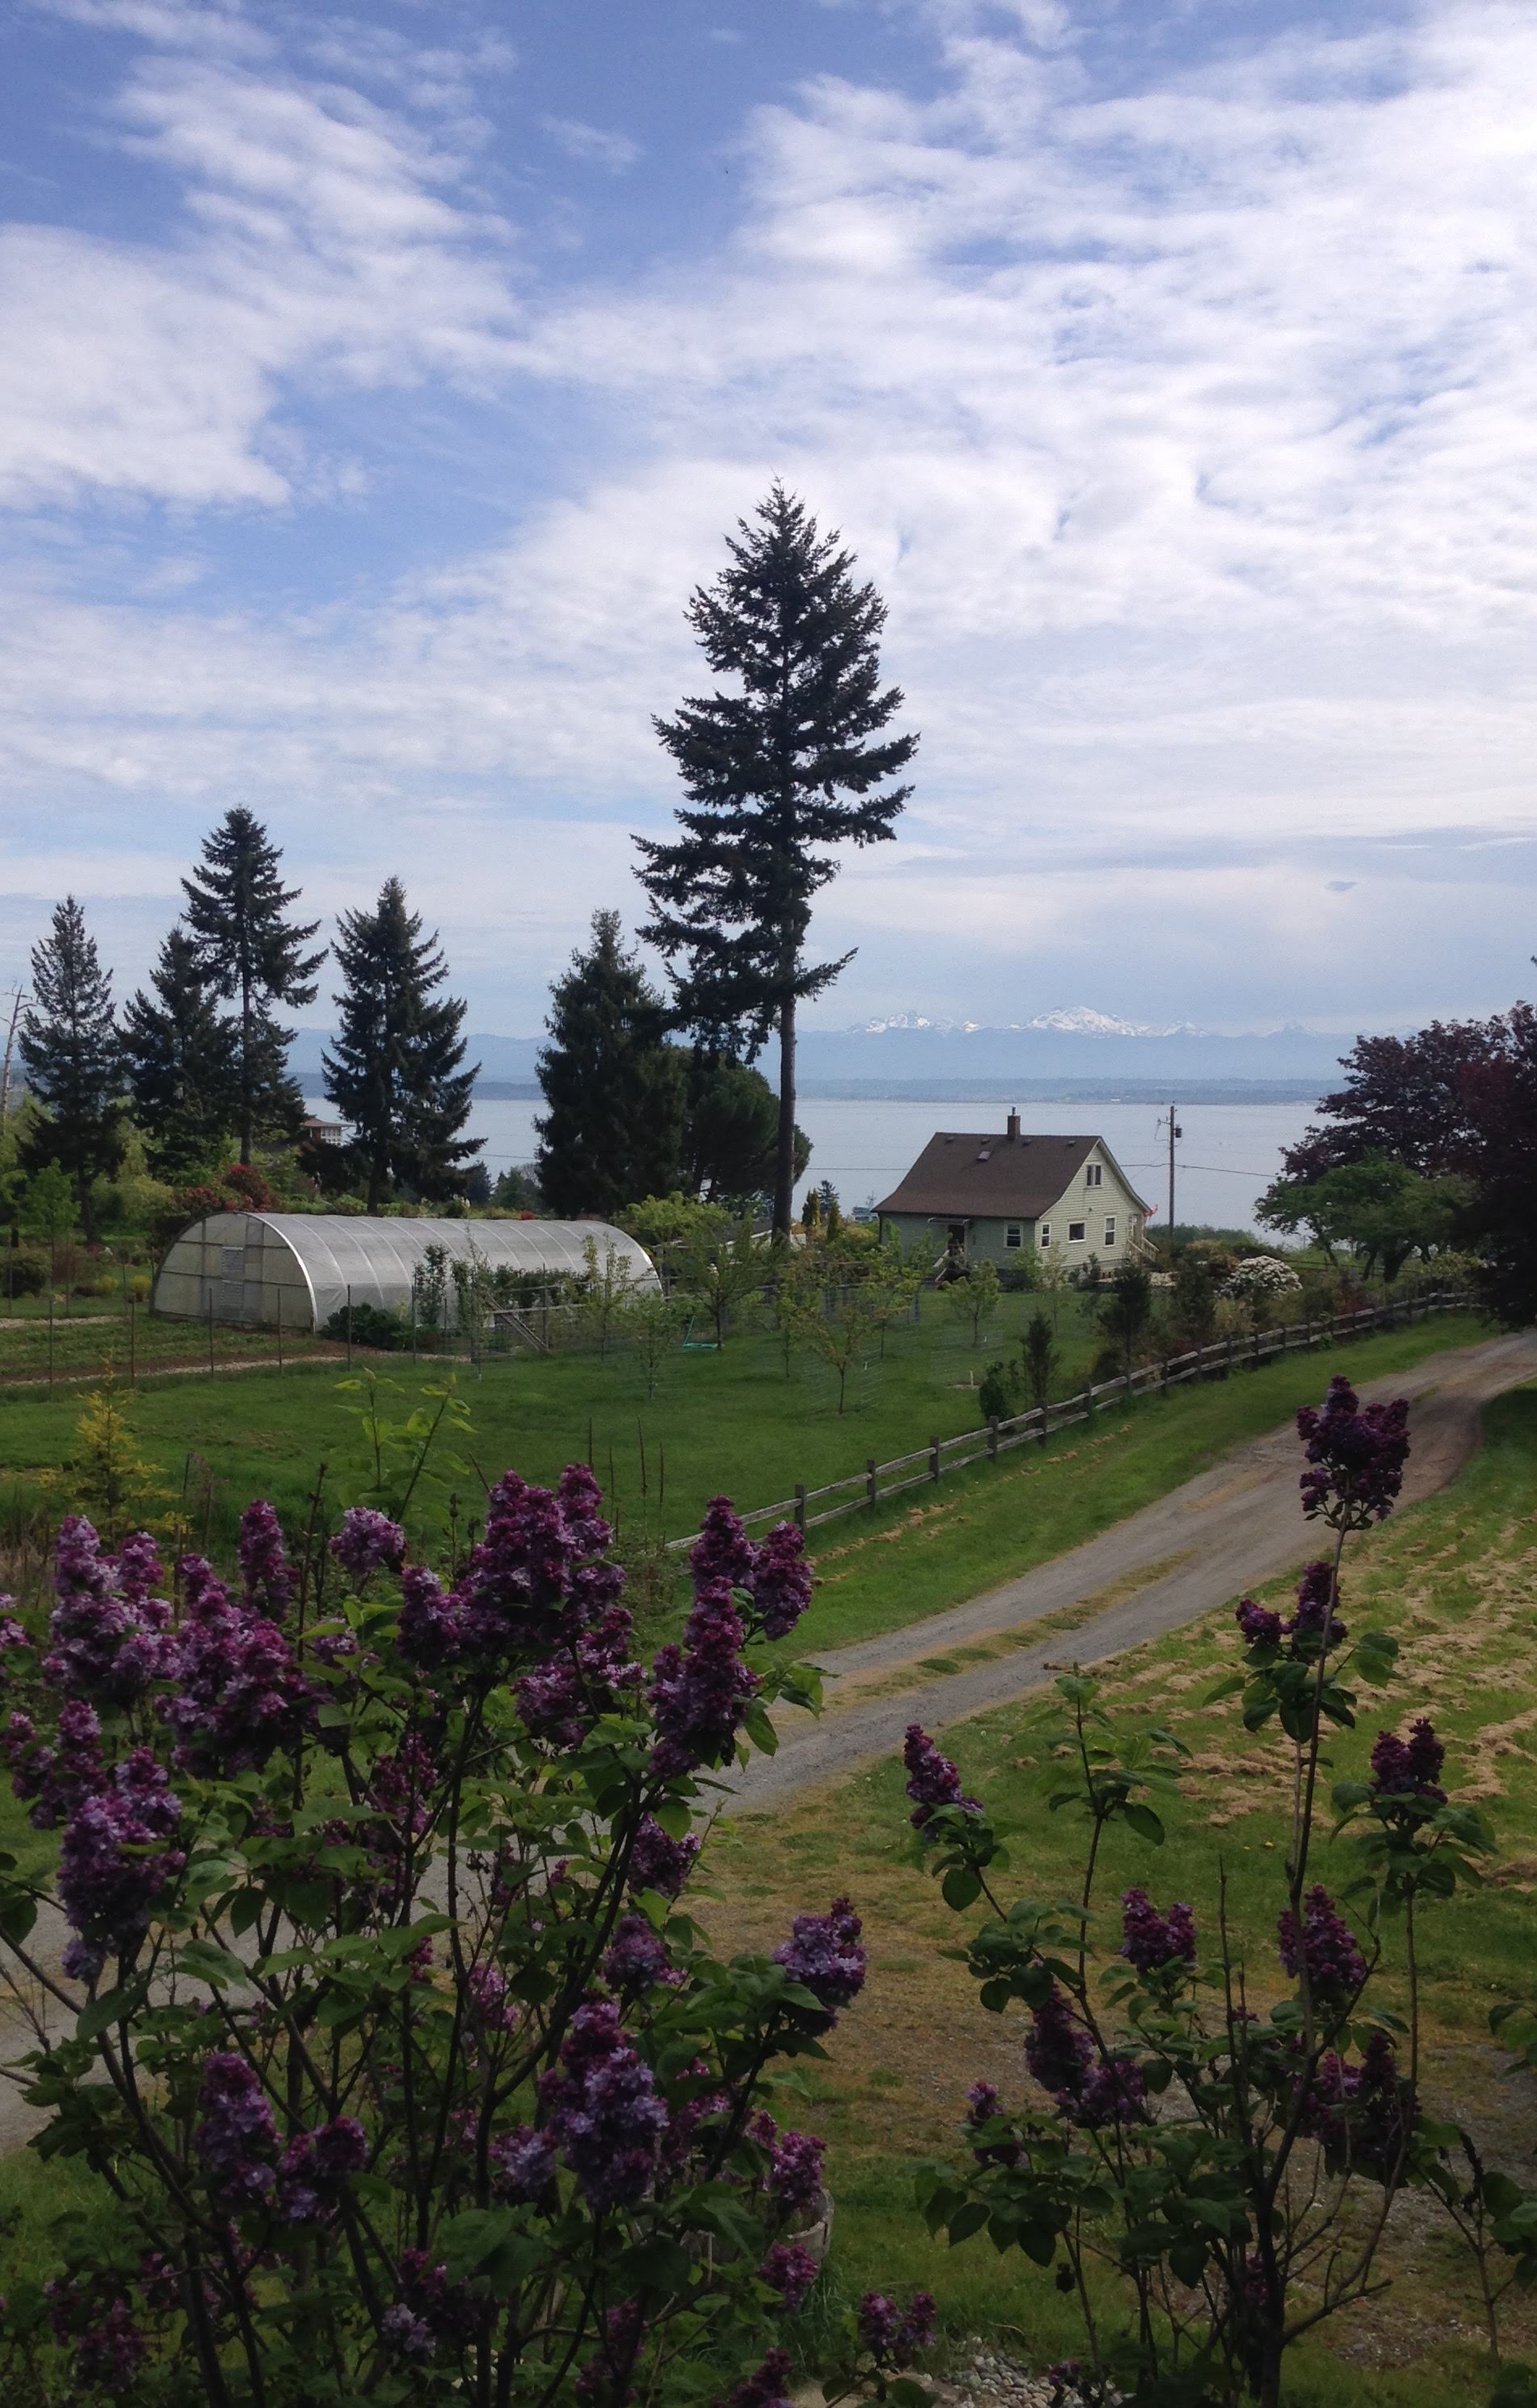 THE 'OLD HOUSE' VIEW on moving day. We'll never know what June and July look like from that deck - but August 2017 through May 2018 were pretty darn lovely.